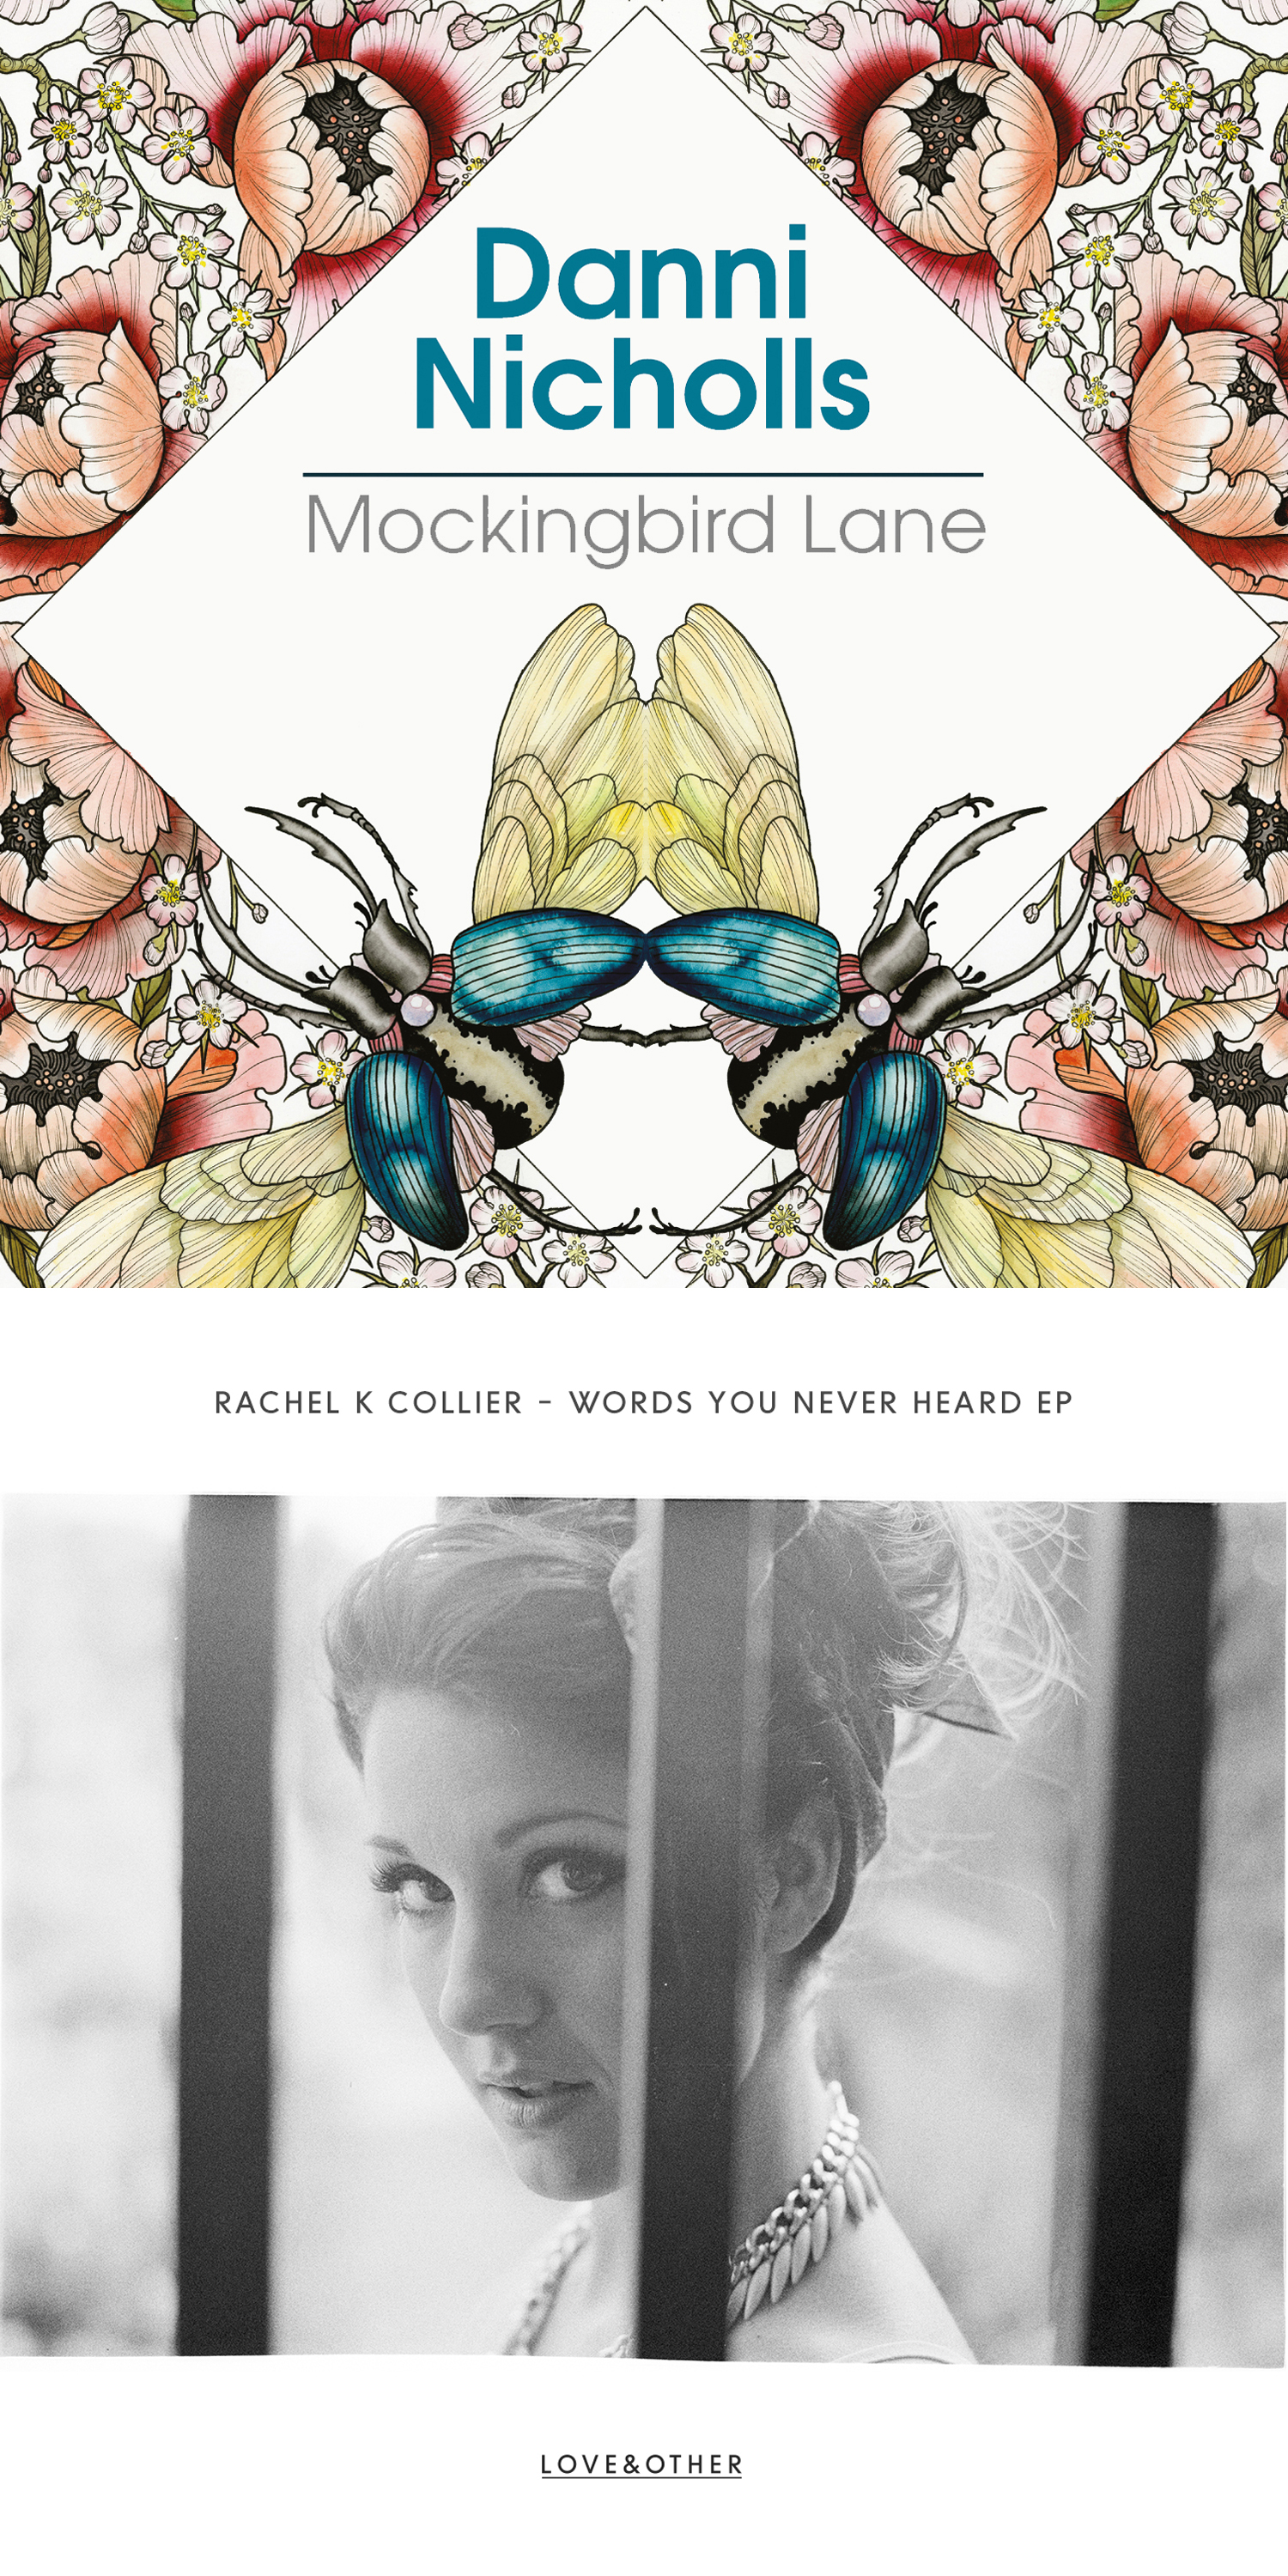 New releases for Danni Nicholls & Rachel K Collier!